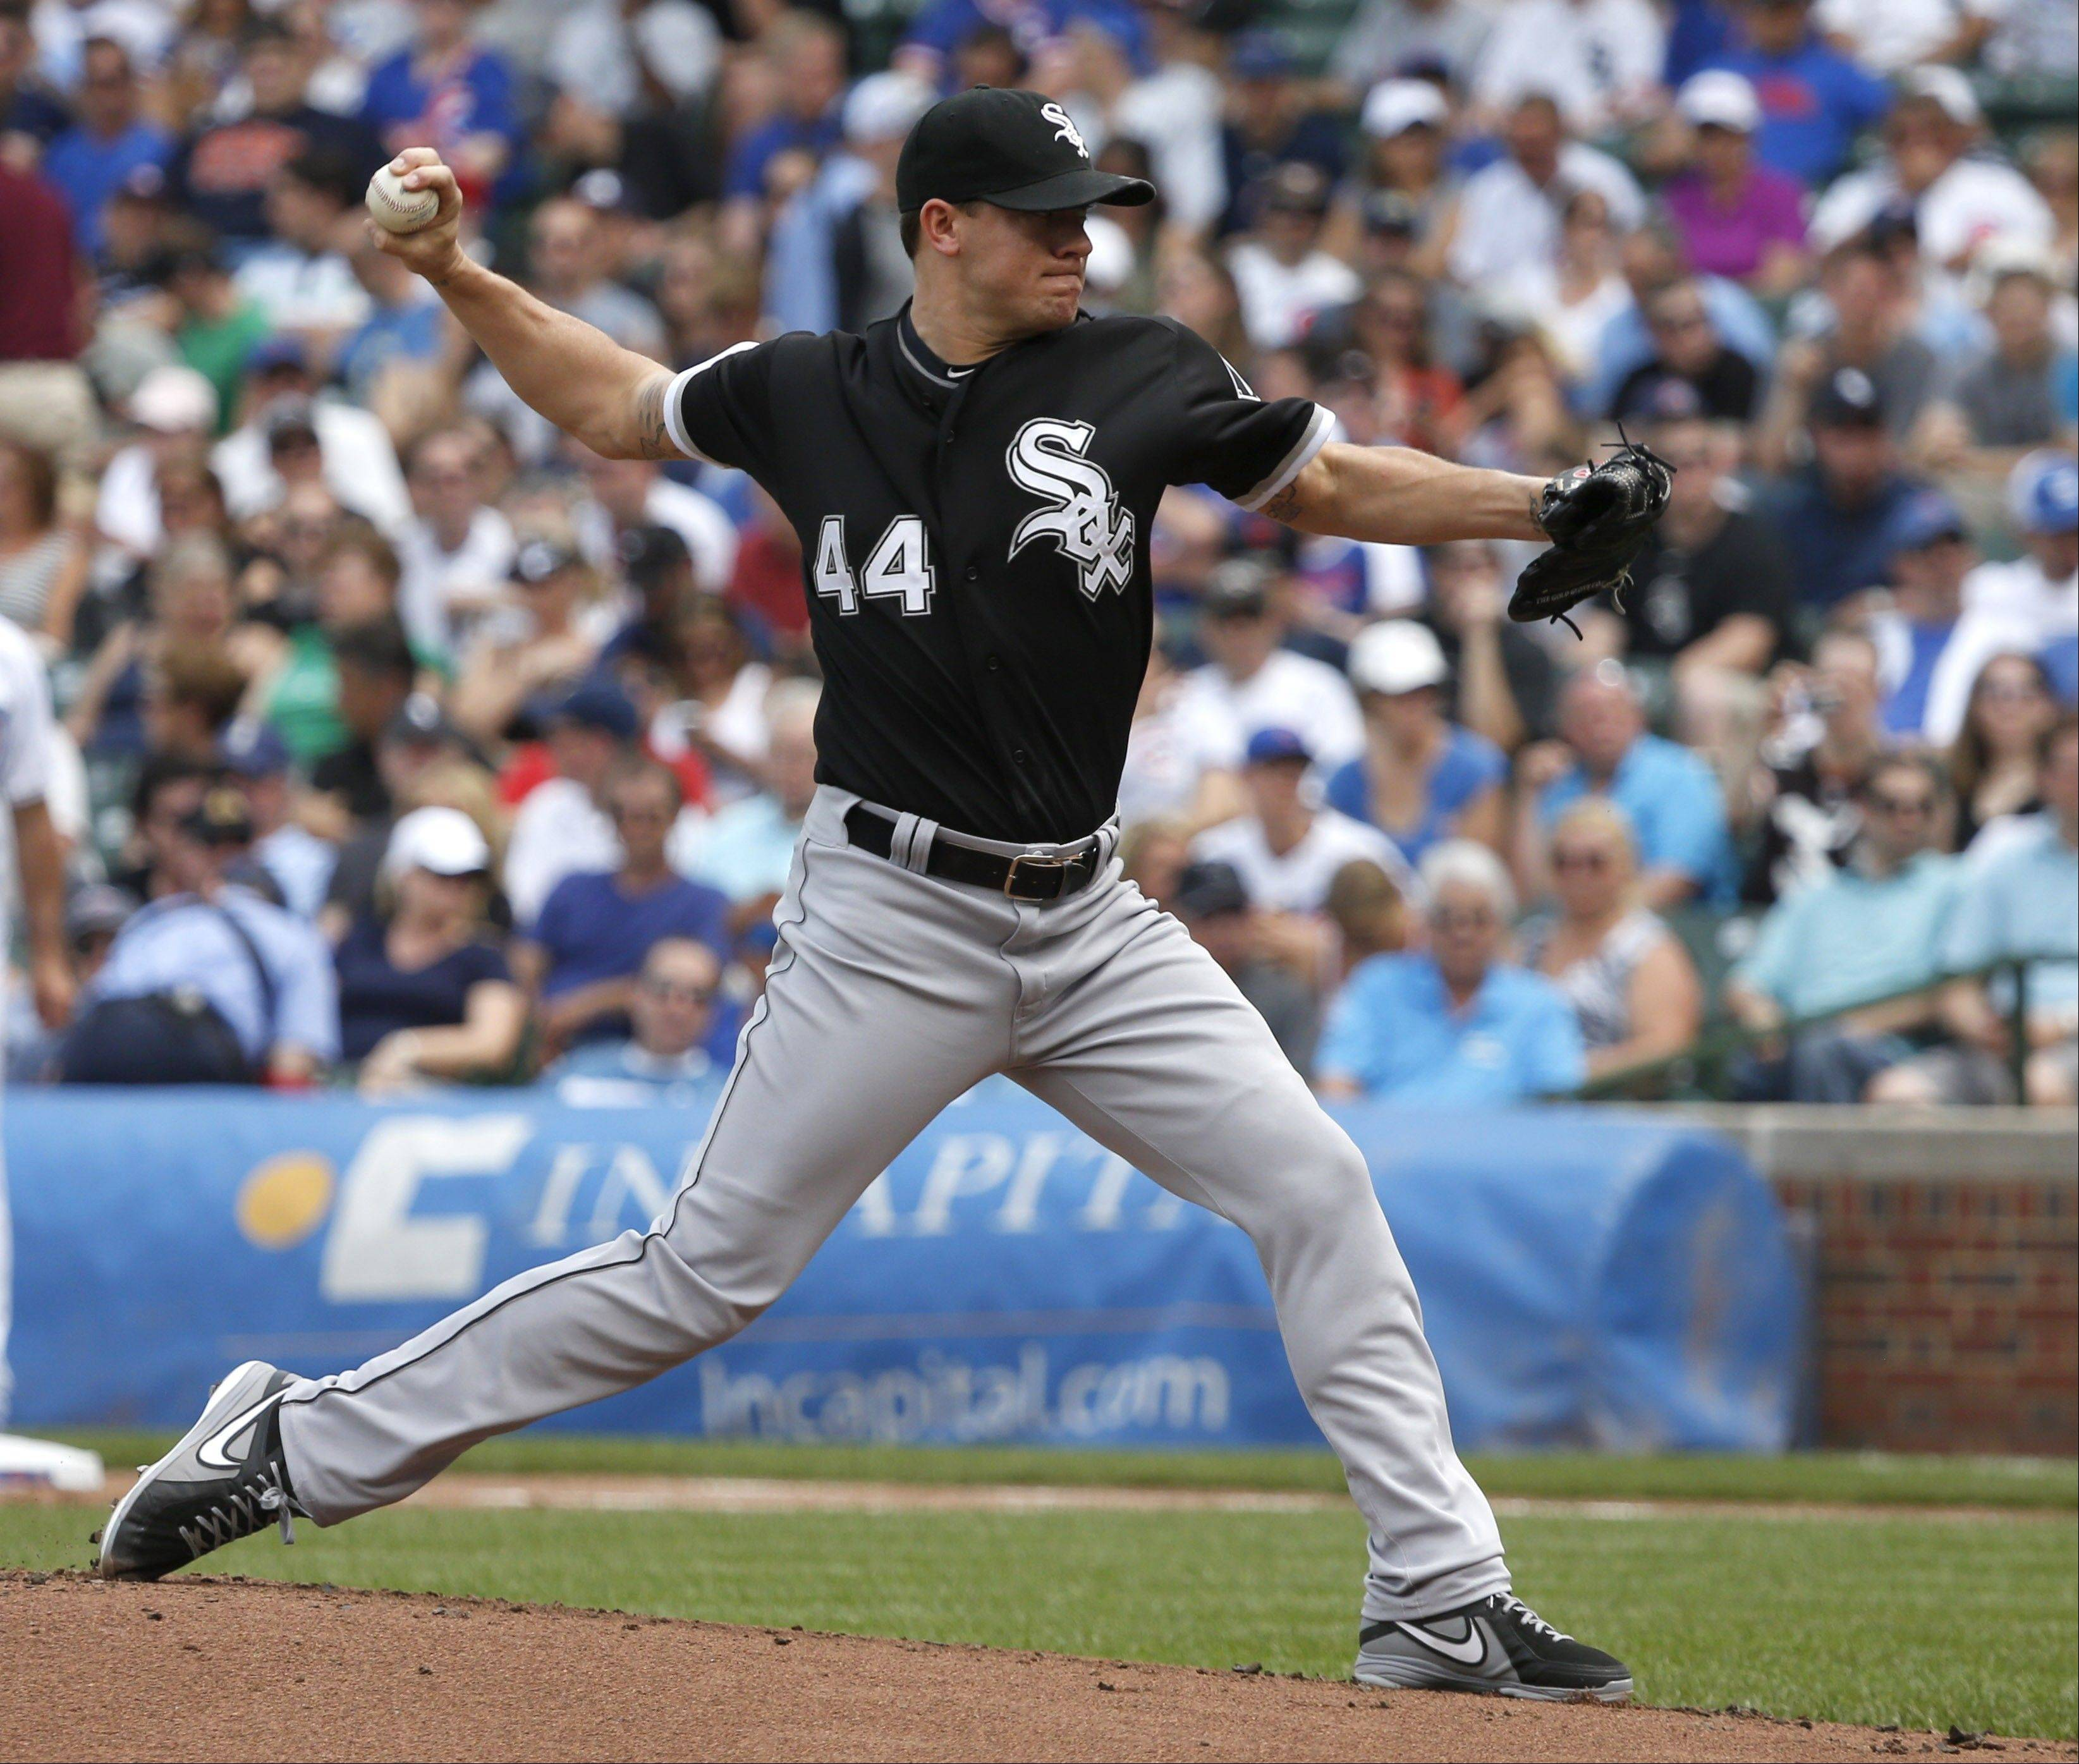 Chicago White Sox starting pitcher Jake Peavy delivers during the first inning of an interleague baseball game against the Chicago Cubs Thursday, May 30, 2013, in Chicago.